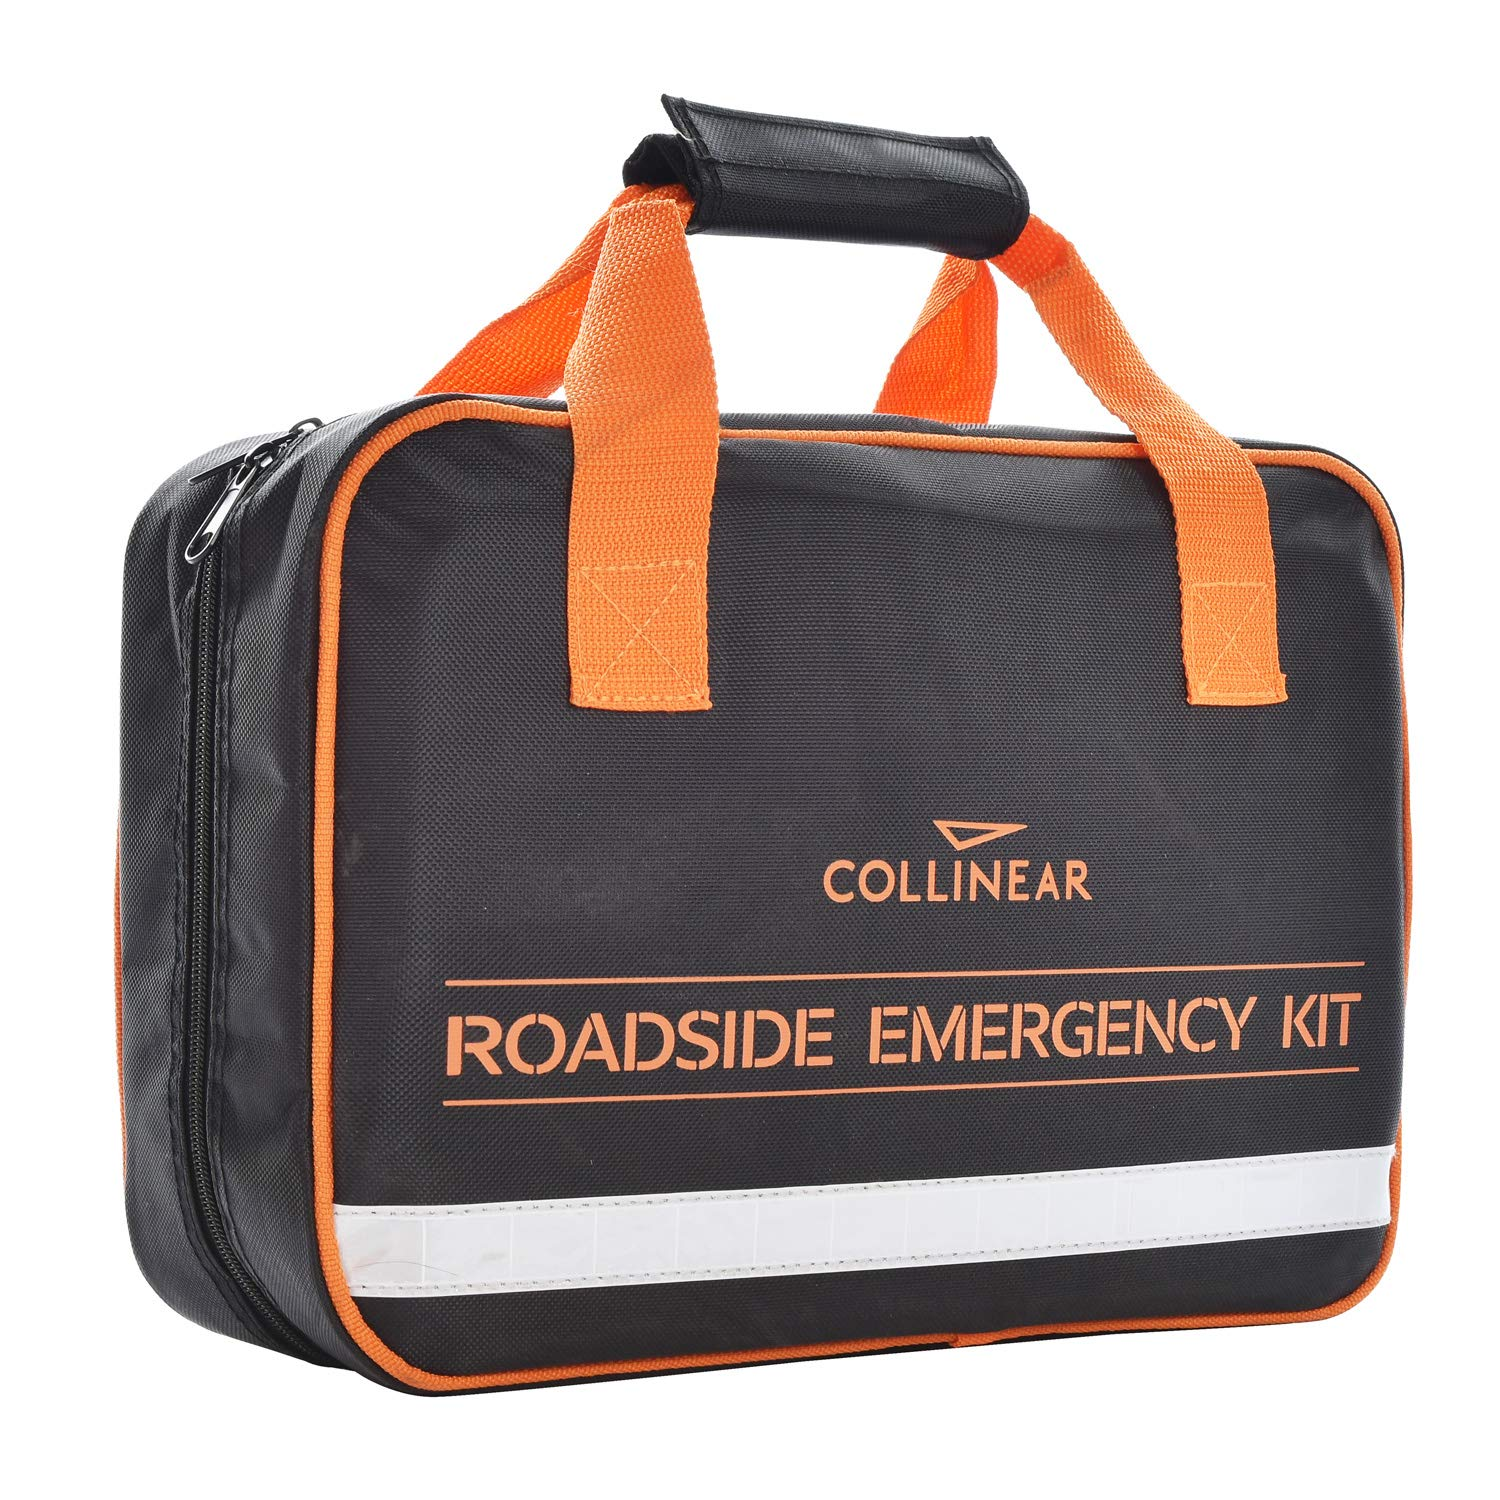 Collinear Roadside Emergency Kit Multifunctional Auto Roadside Assistance Car Premium Road Tool Kit Contains Jumper Cables Tool Bag Reflective Safety Triangle and More Ideal Survival Pack Accessories